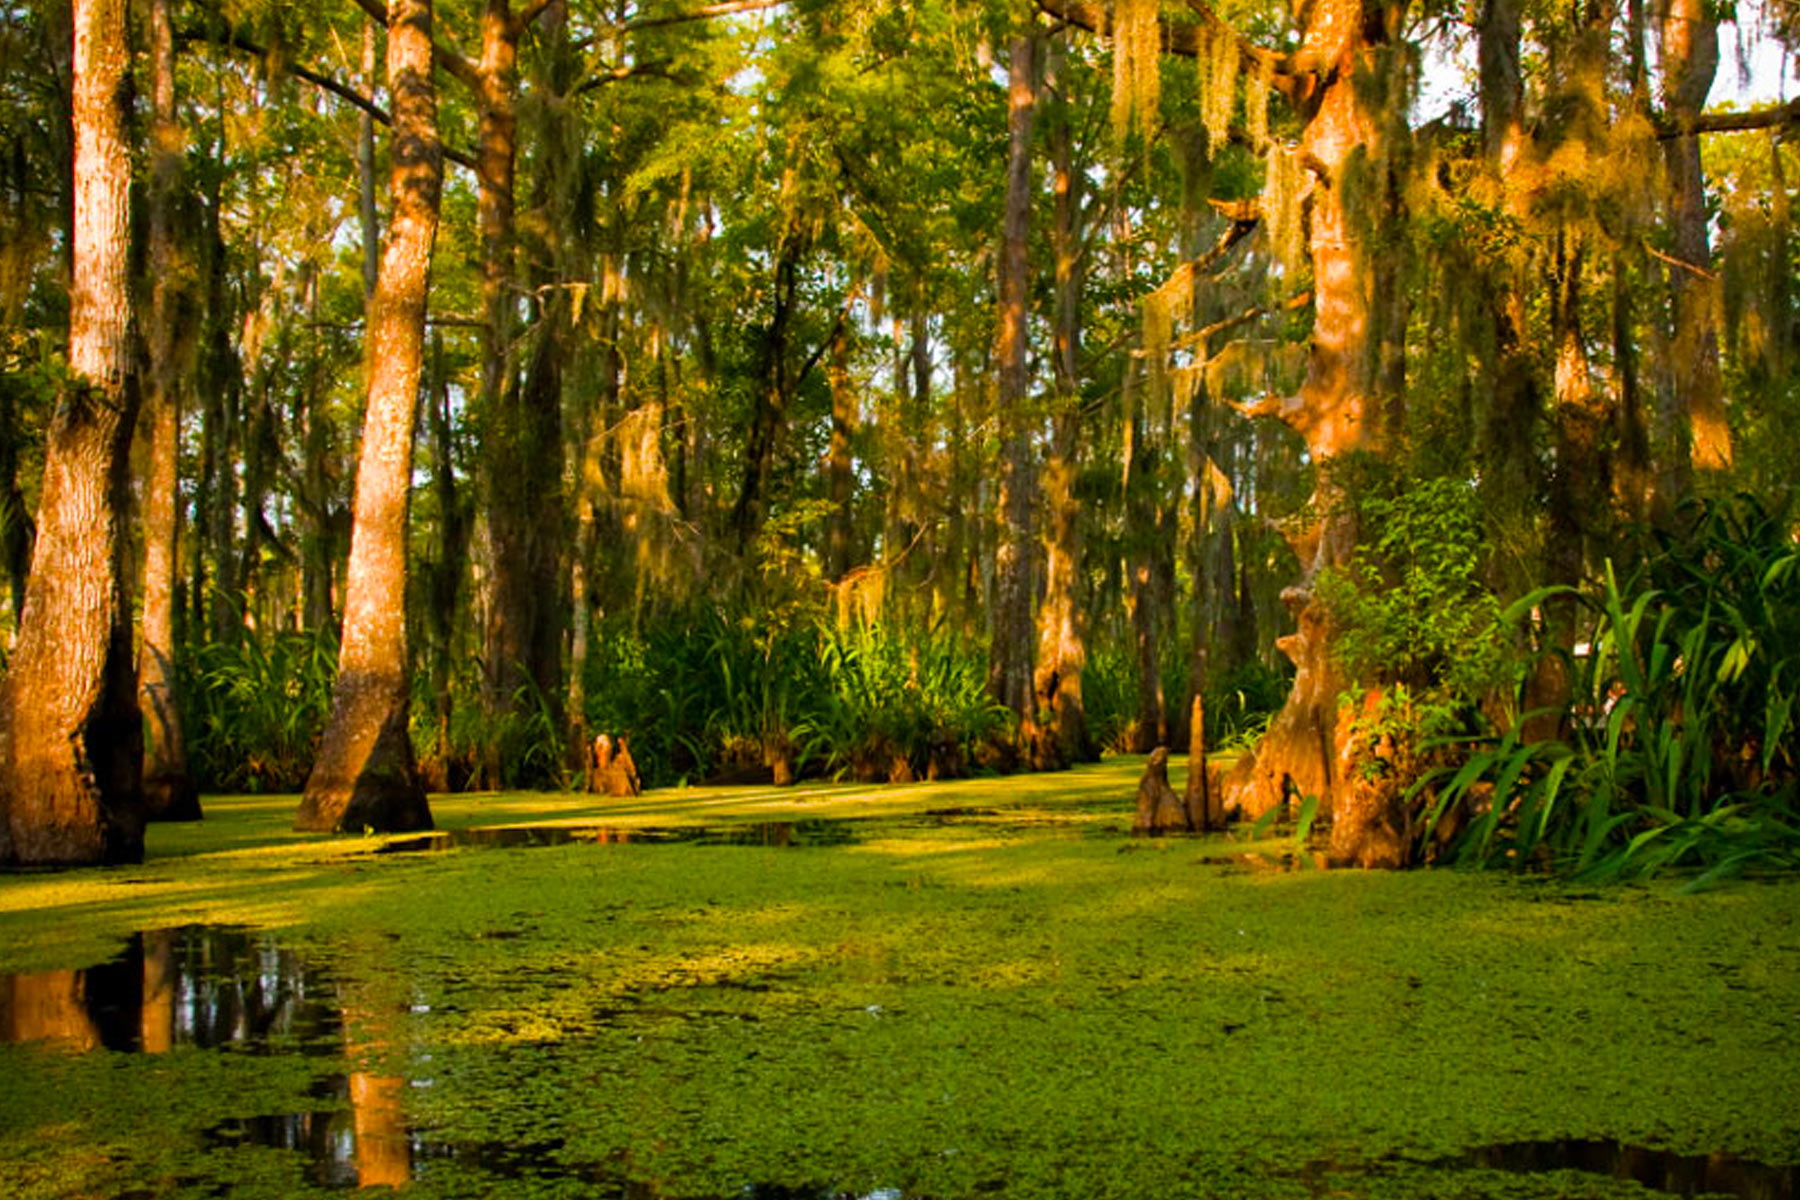 Swamp Background 1800x1200